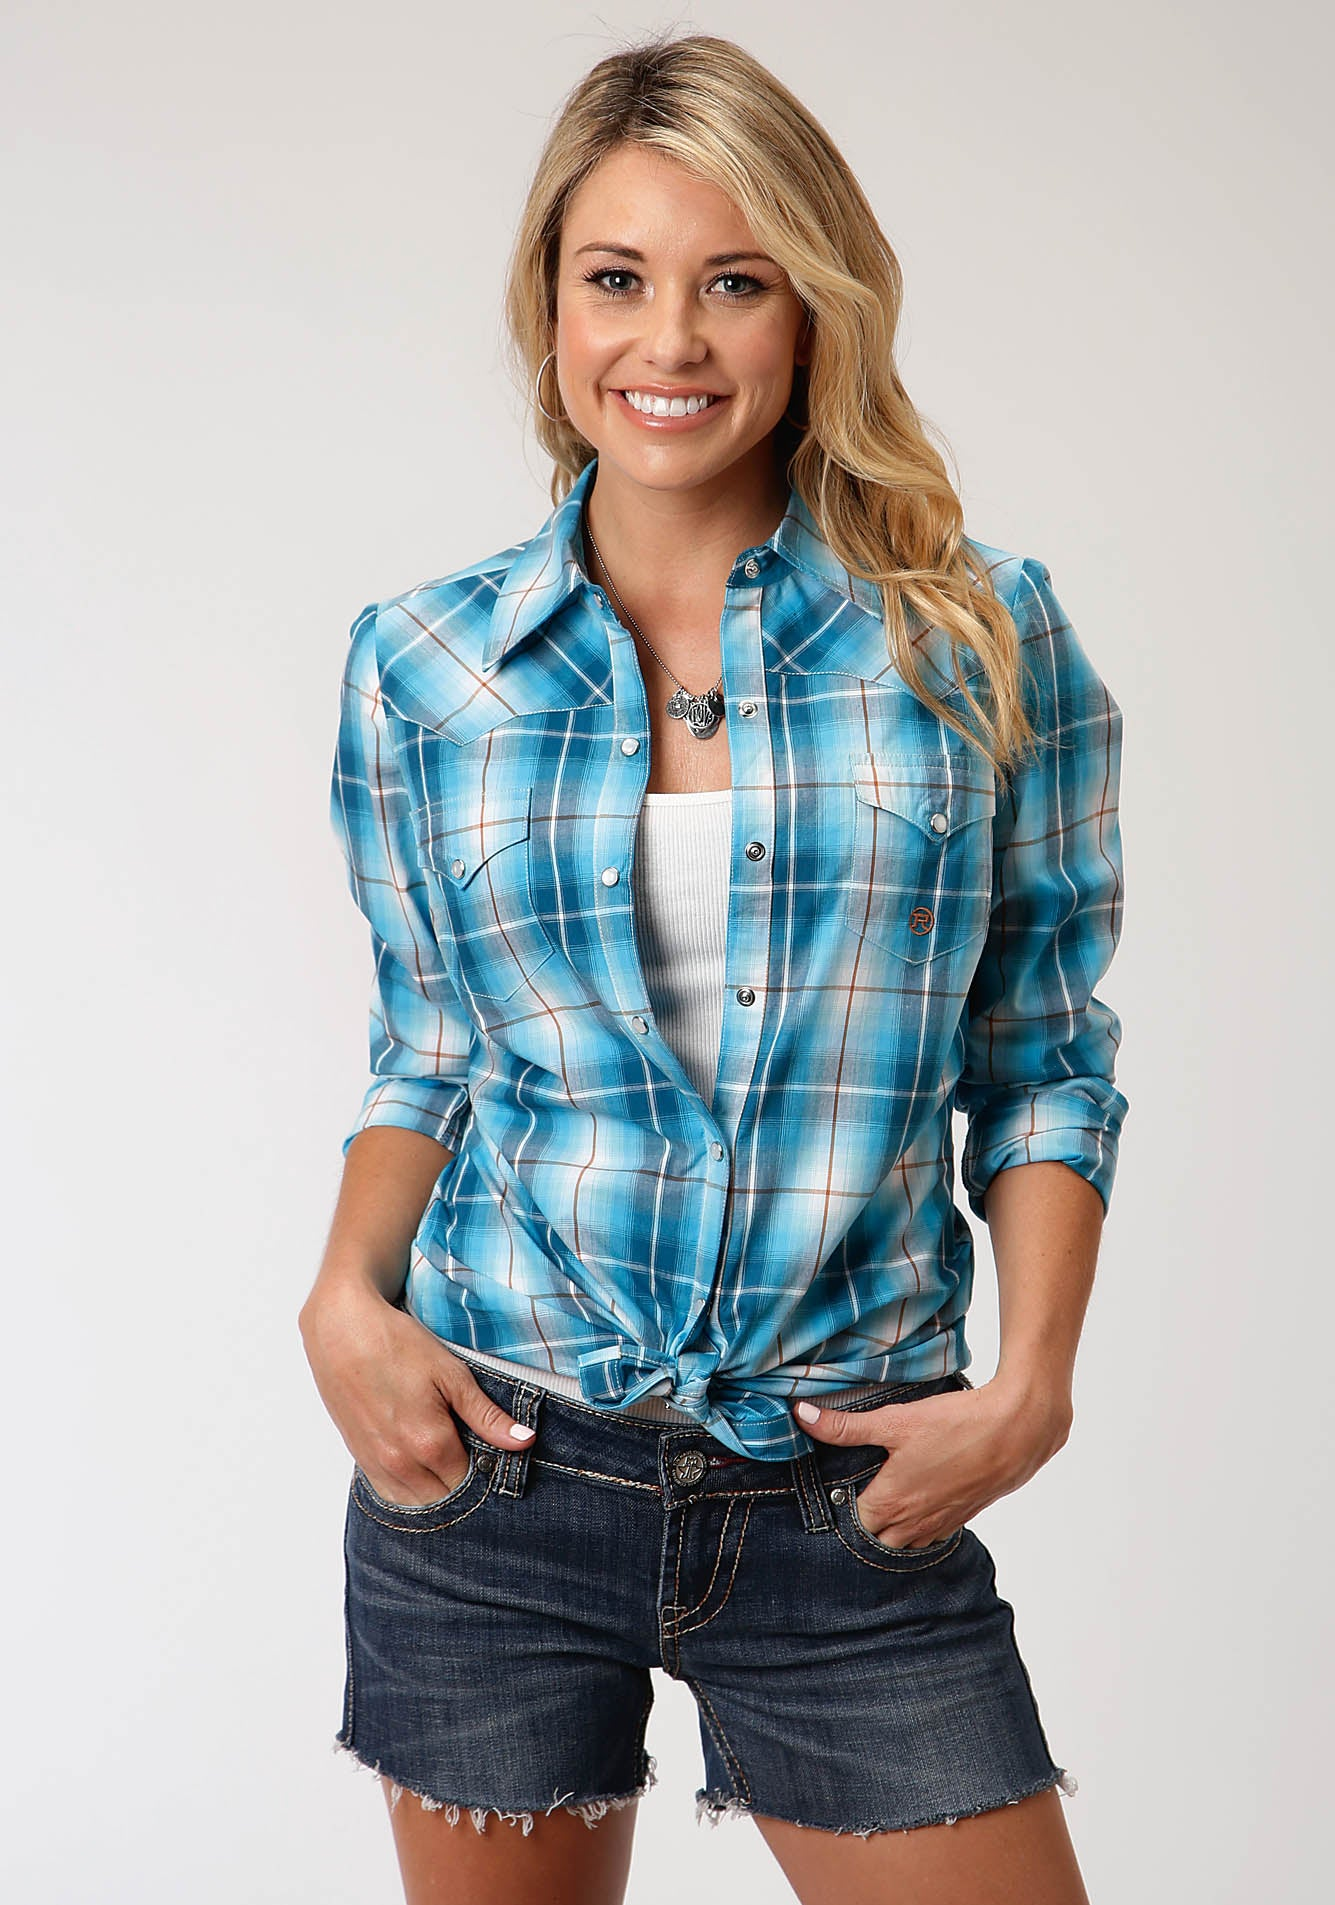 ROPER WOMENS BLUE 00163 BLUE MESA PLAID WOMEN'S AMARILLO COLLECTION - DESERT SKY LONG SLEEVE